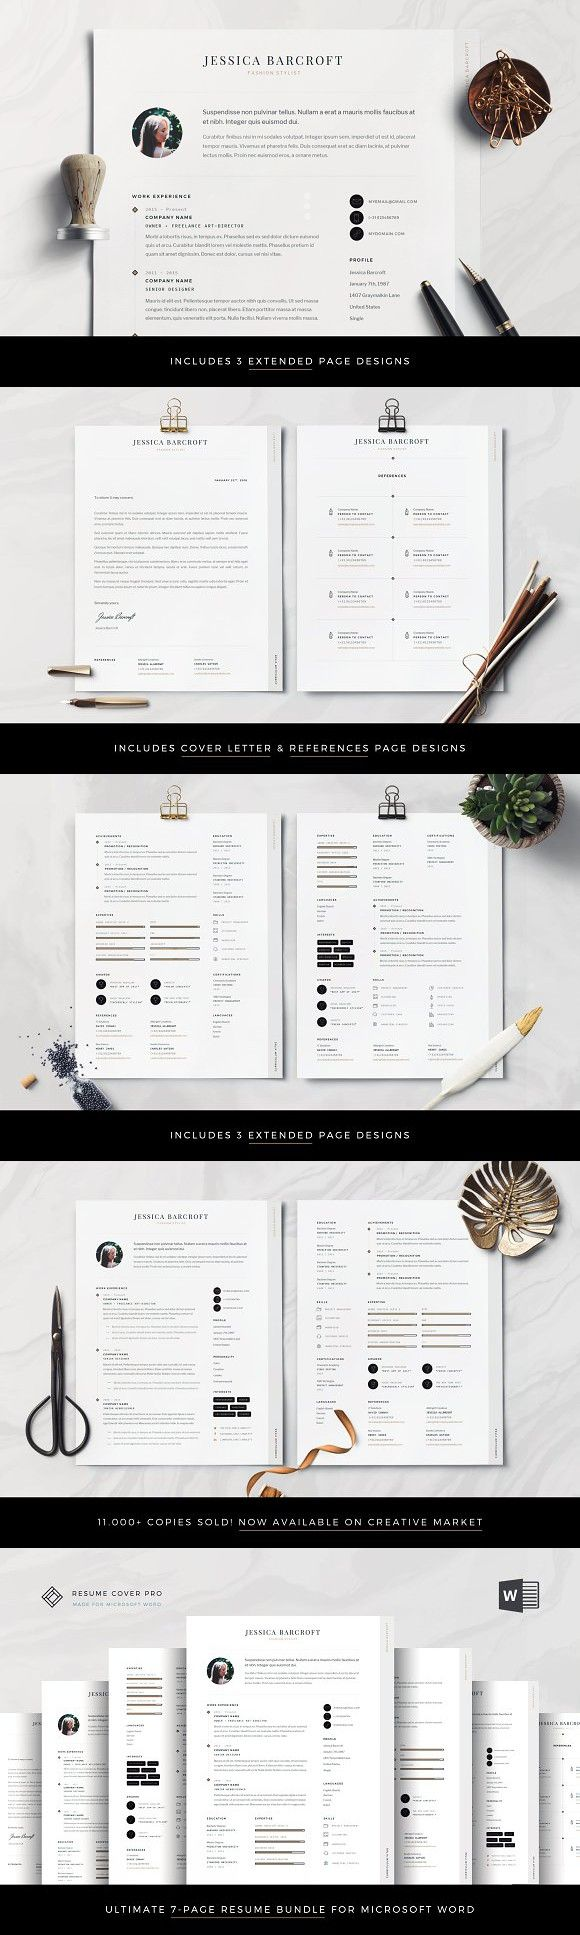 Professional Resume Bundle for Word 1pageresume 2pageresume